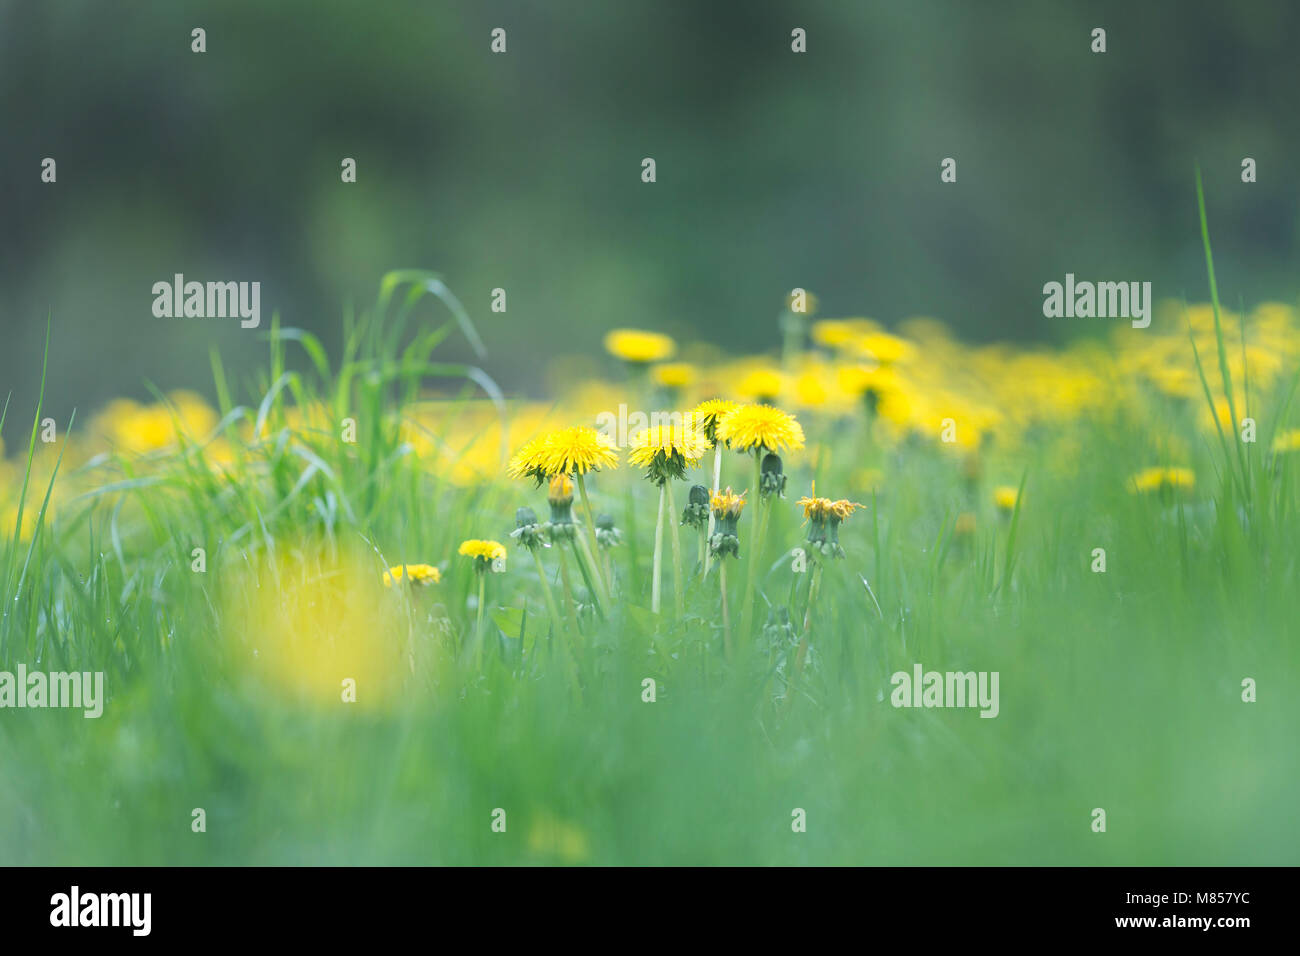 Spring meadow with yellow blooming dandelions - Stock Image